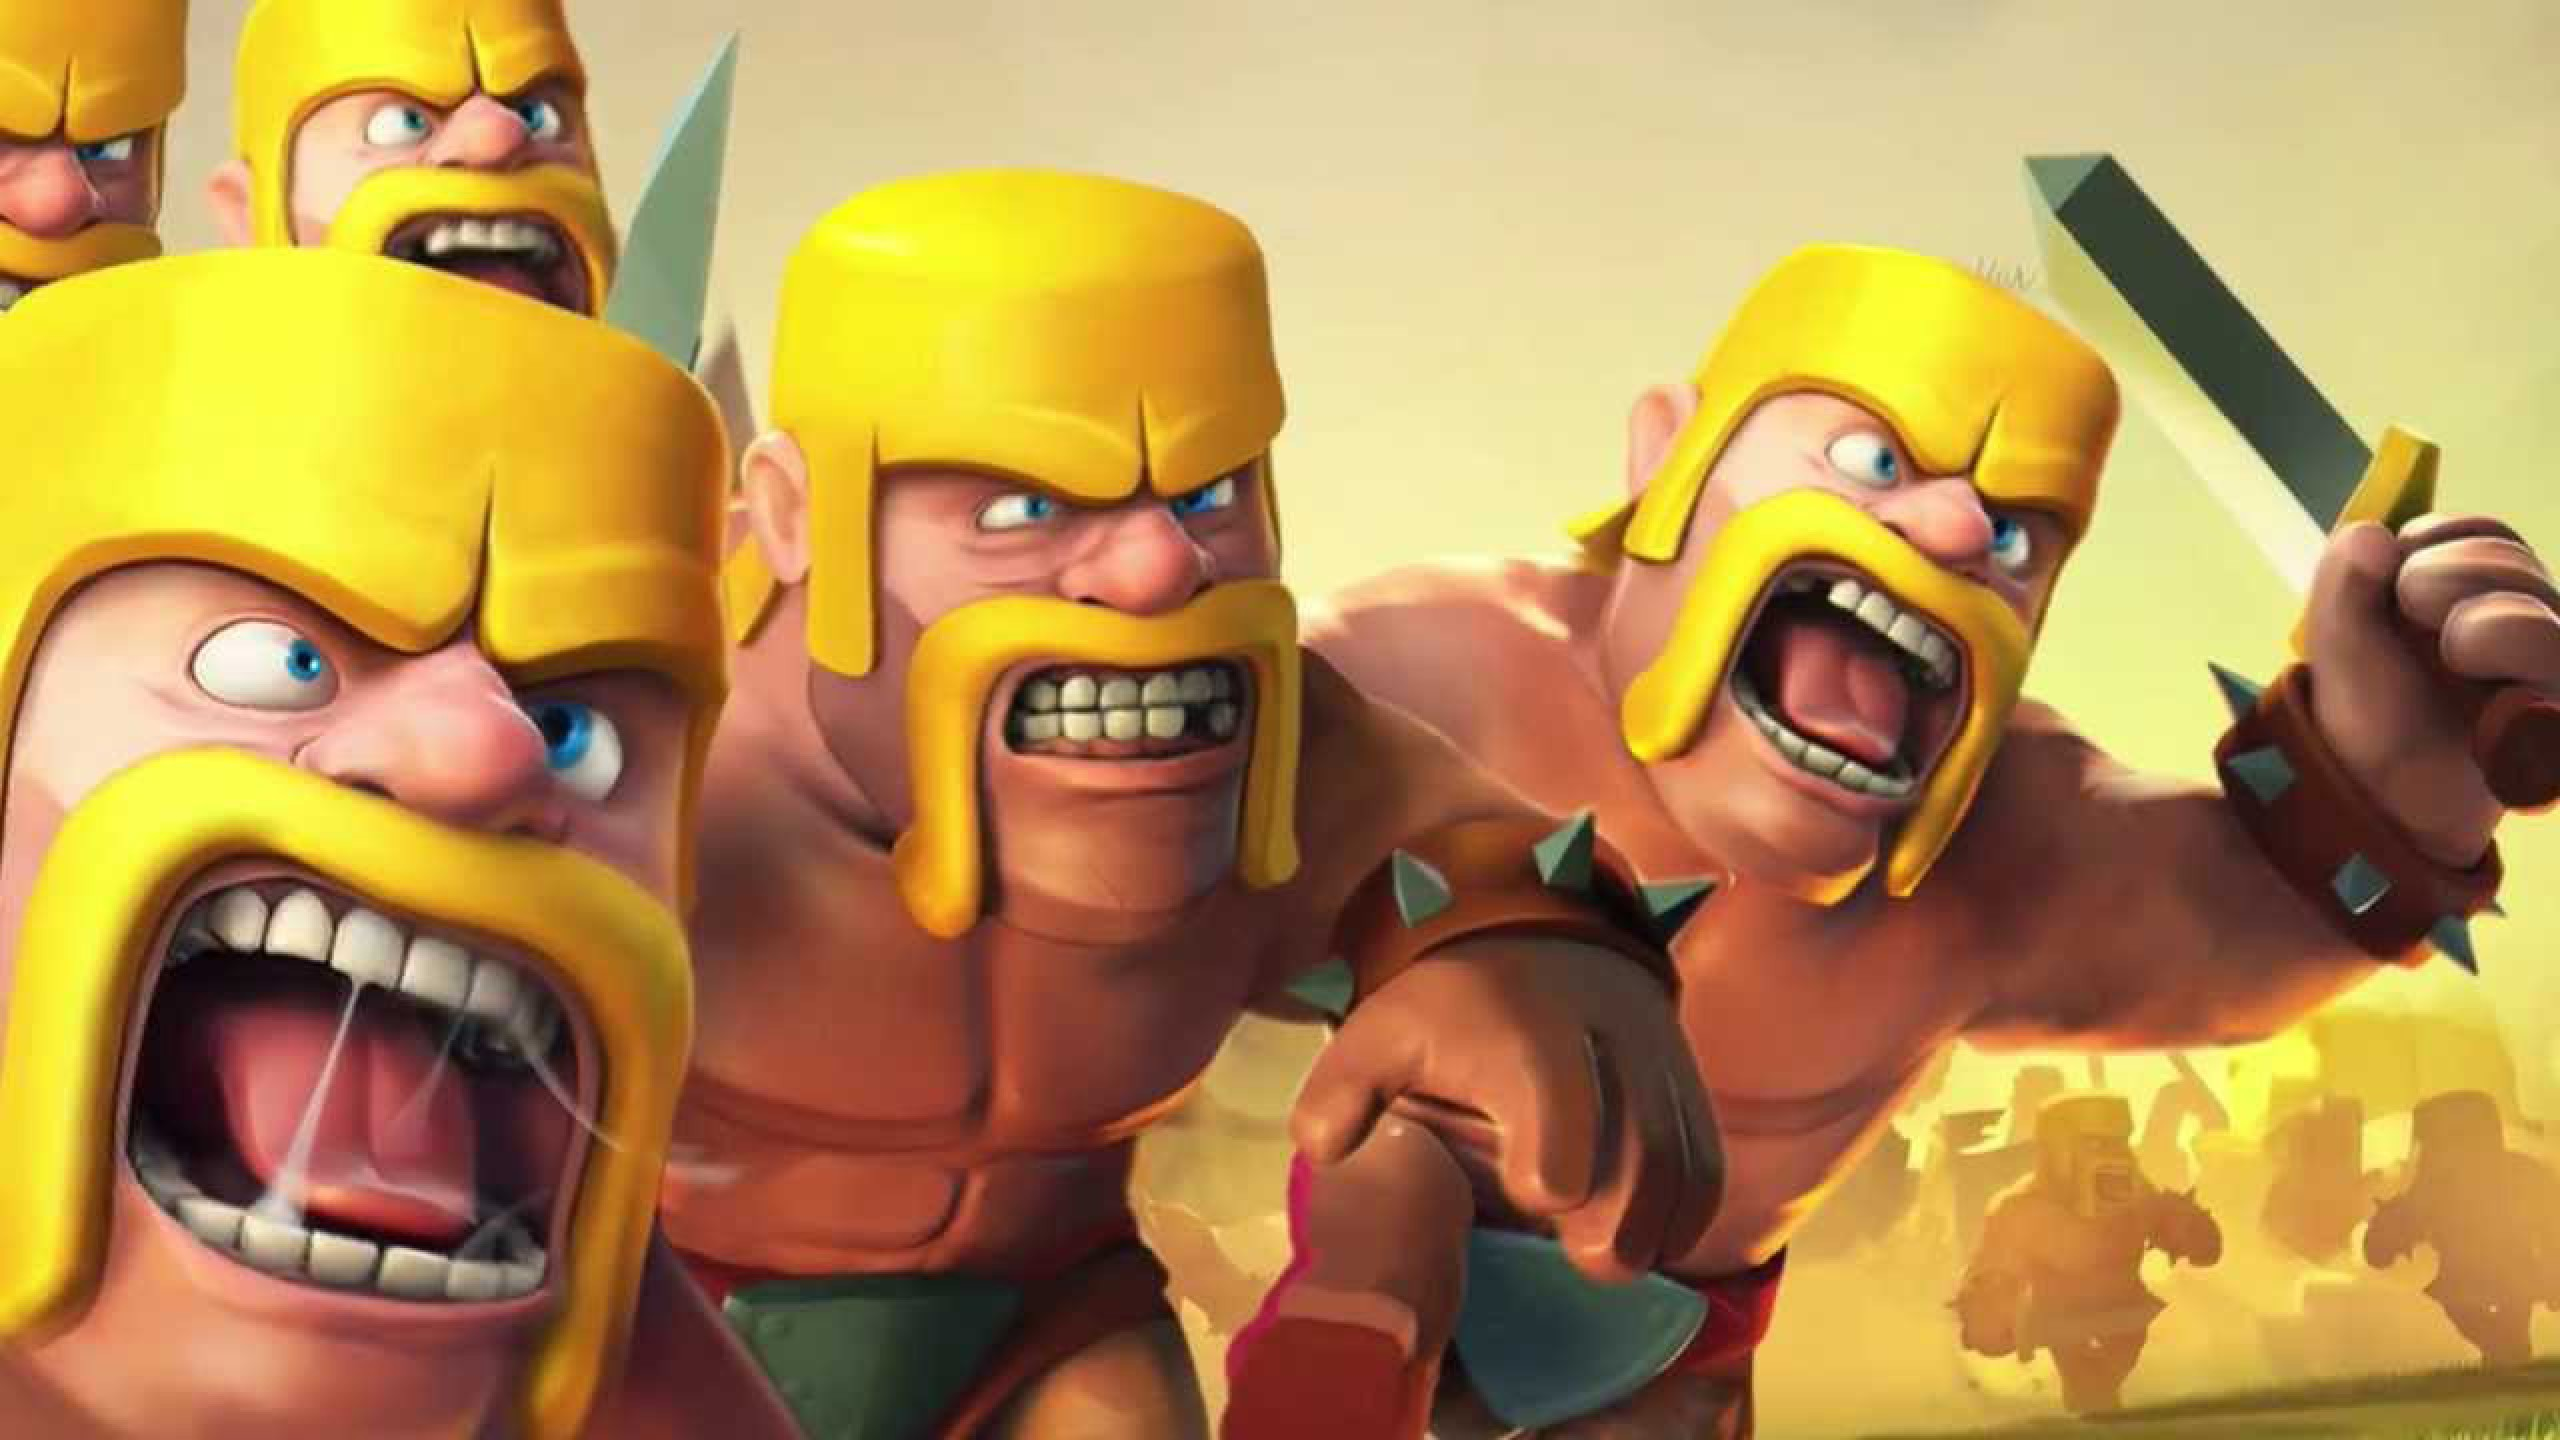 Clash of Clans Wallpapers  Best Wallpapers 2560x1440